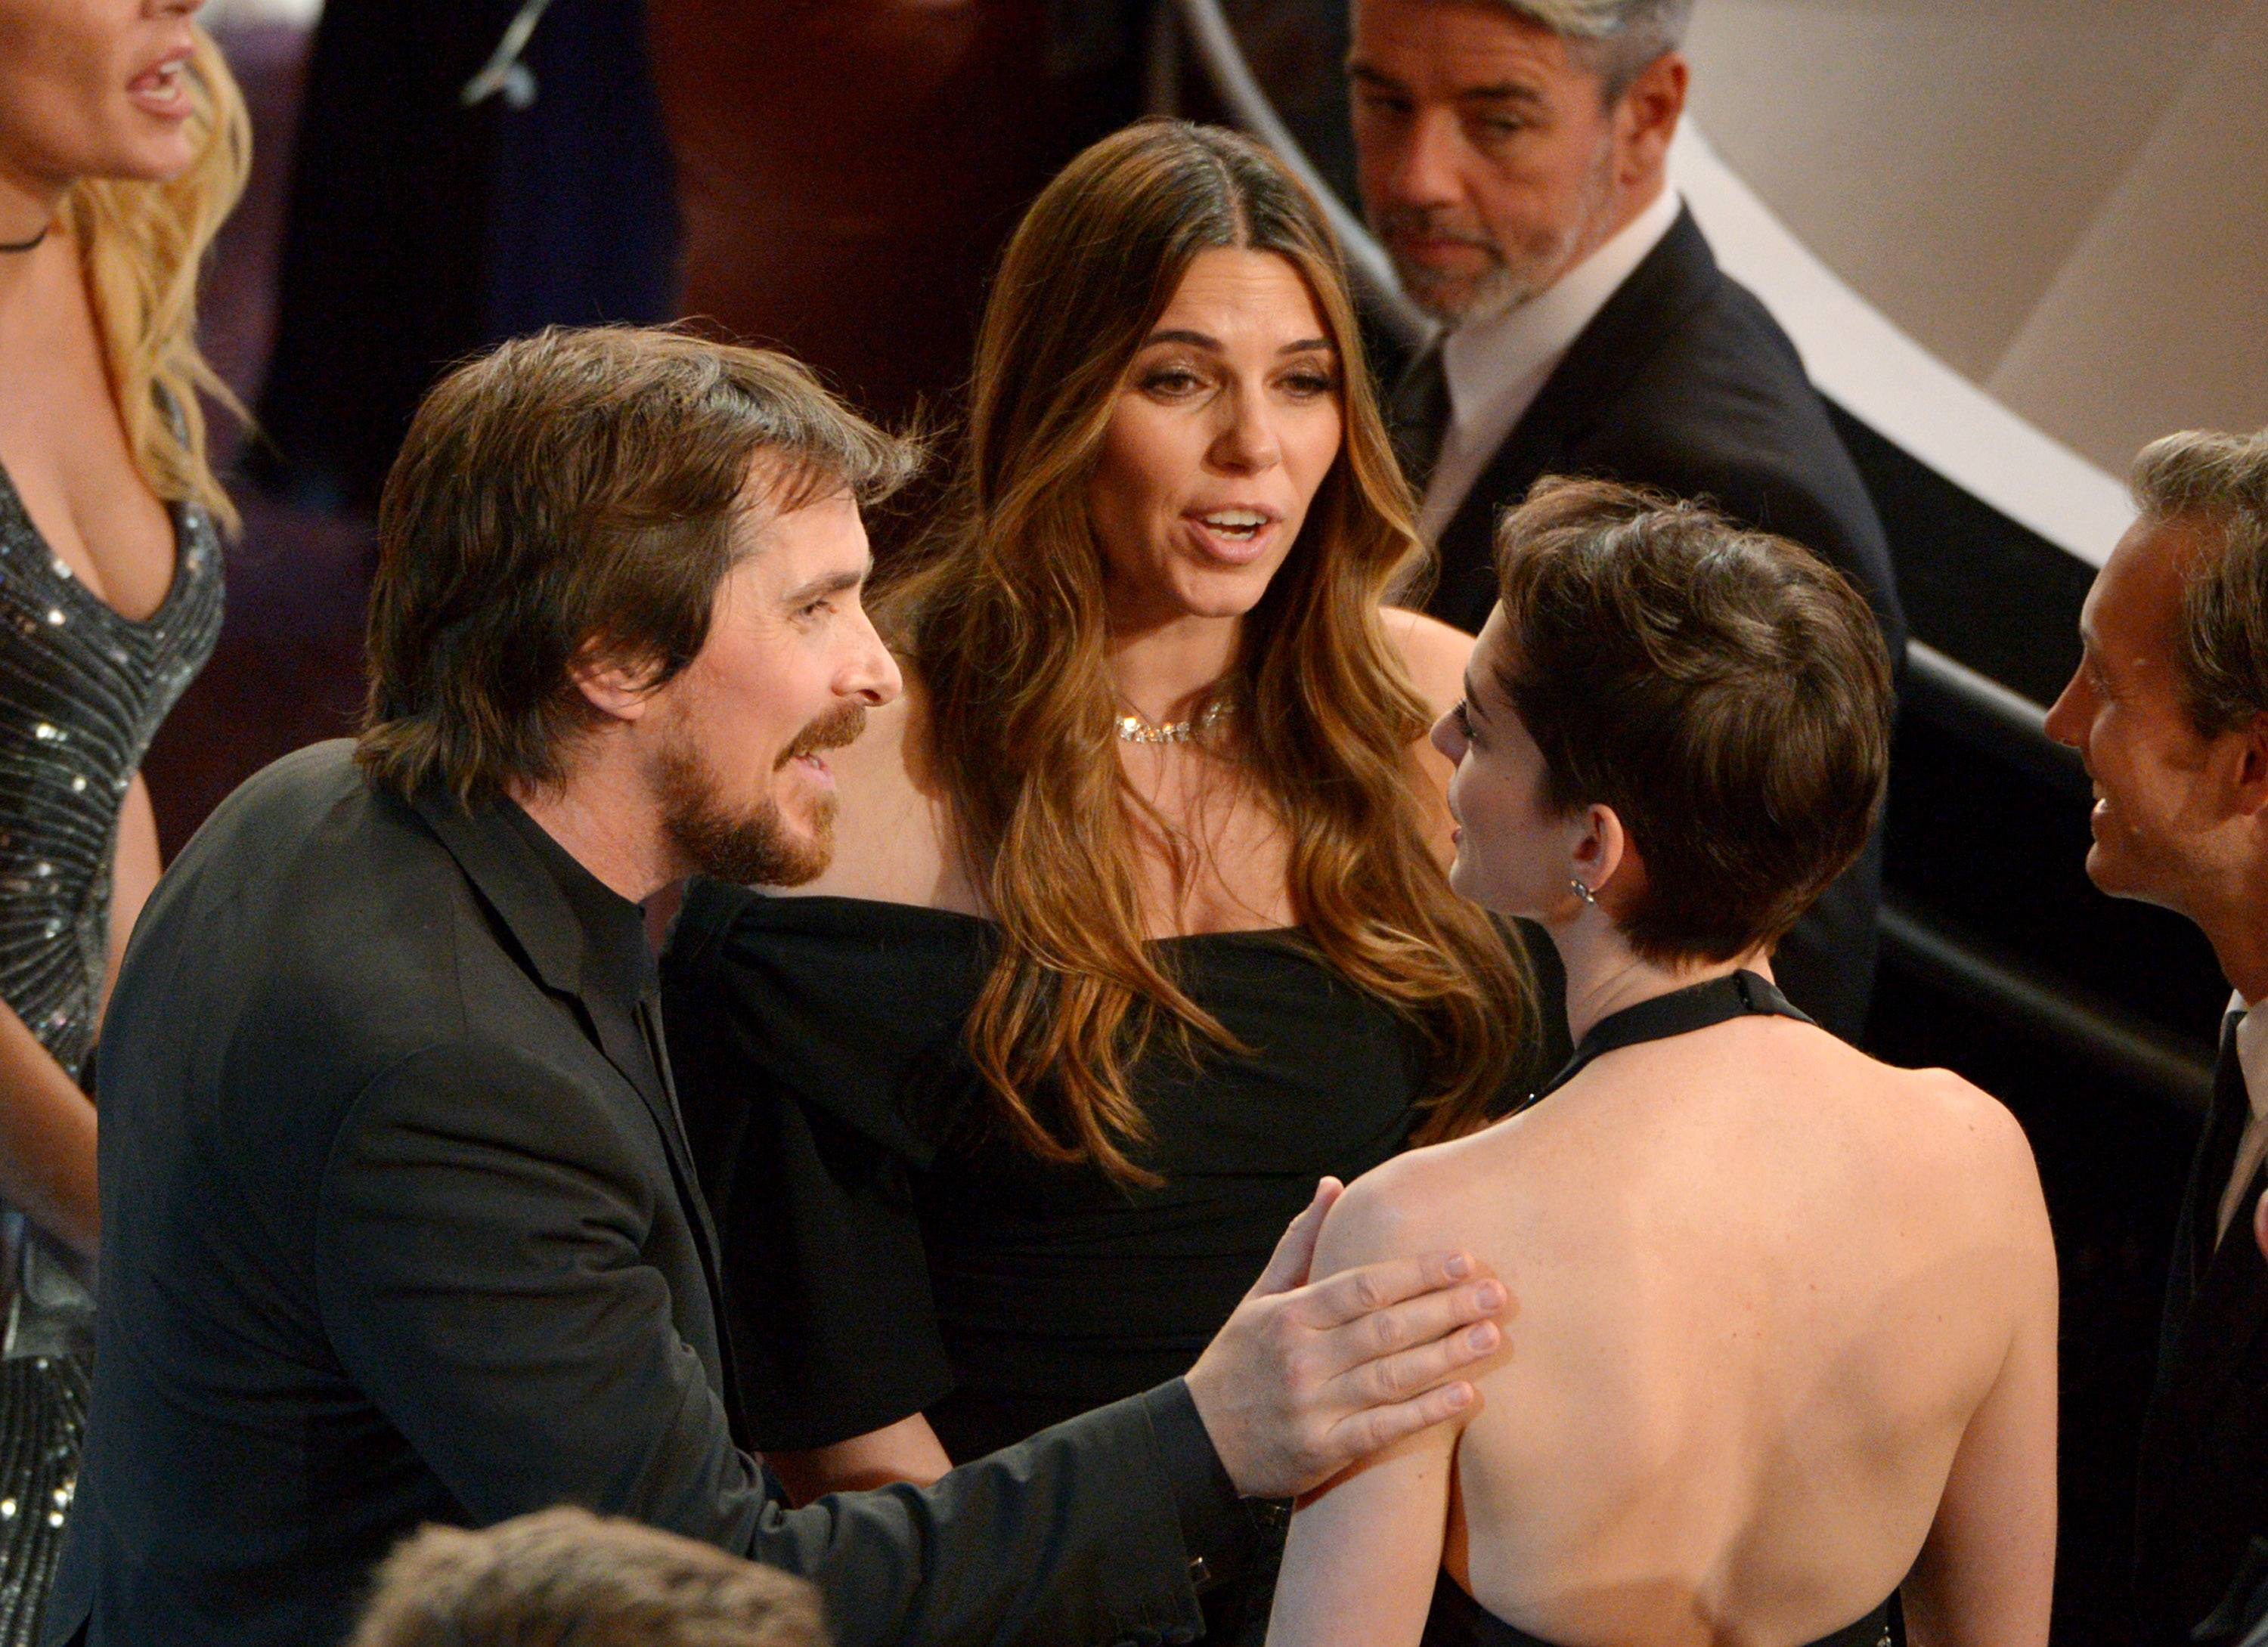 Christian Bale, left, and his wife Sibi Blazic, talk with Anne Hathaway, right, in the audience at the Oscars.